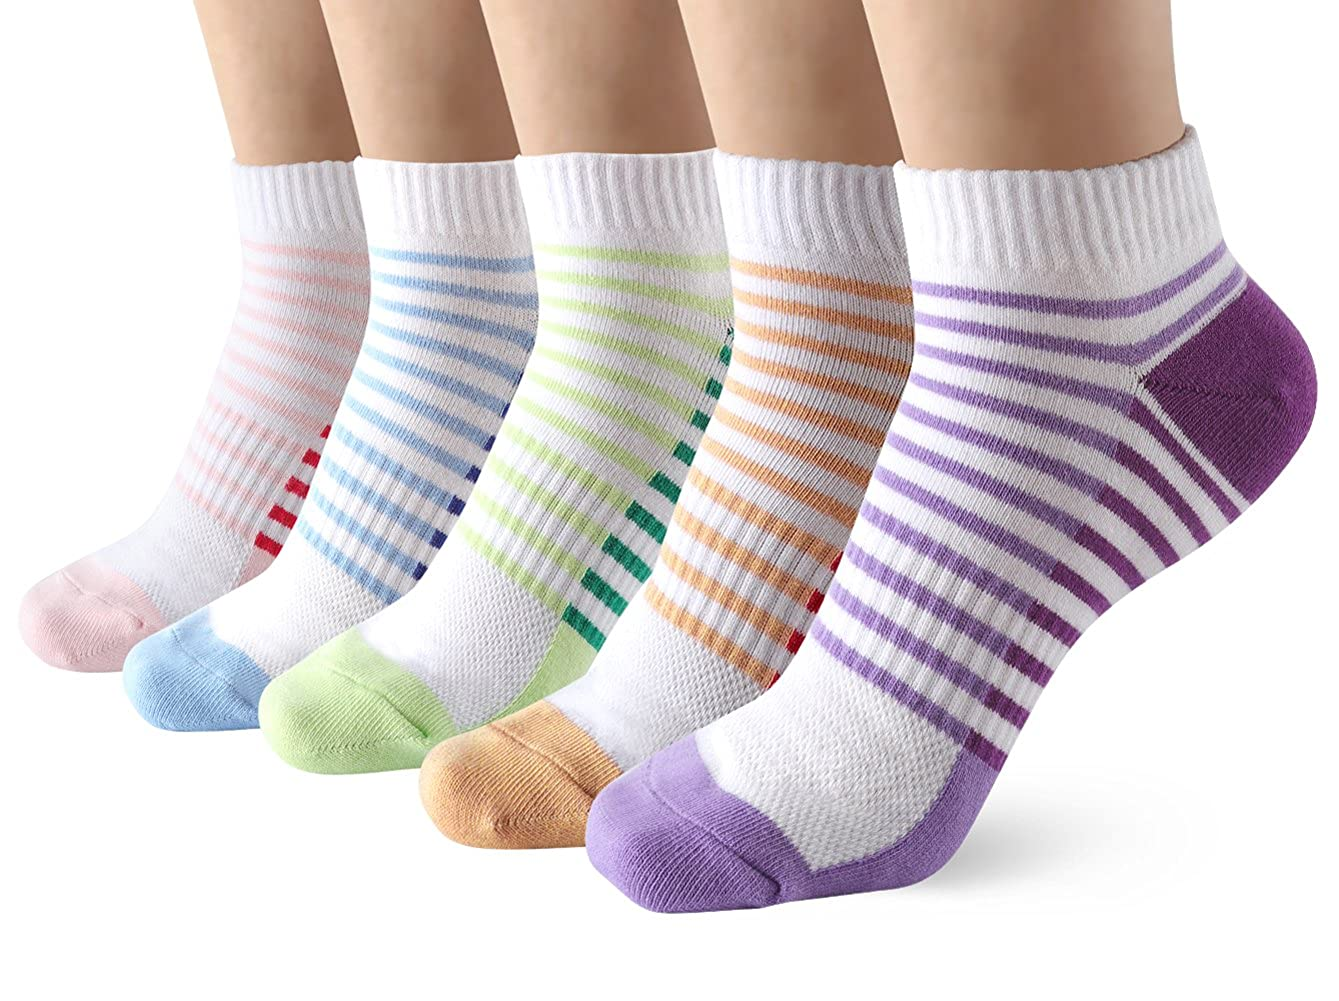 Low Cut Ankle Trainer Socks for Women - 5 Pairs Breathable Stripe Sneaker Socks for Casual Running Walking Fitness Outdoor Sports